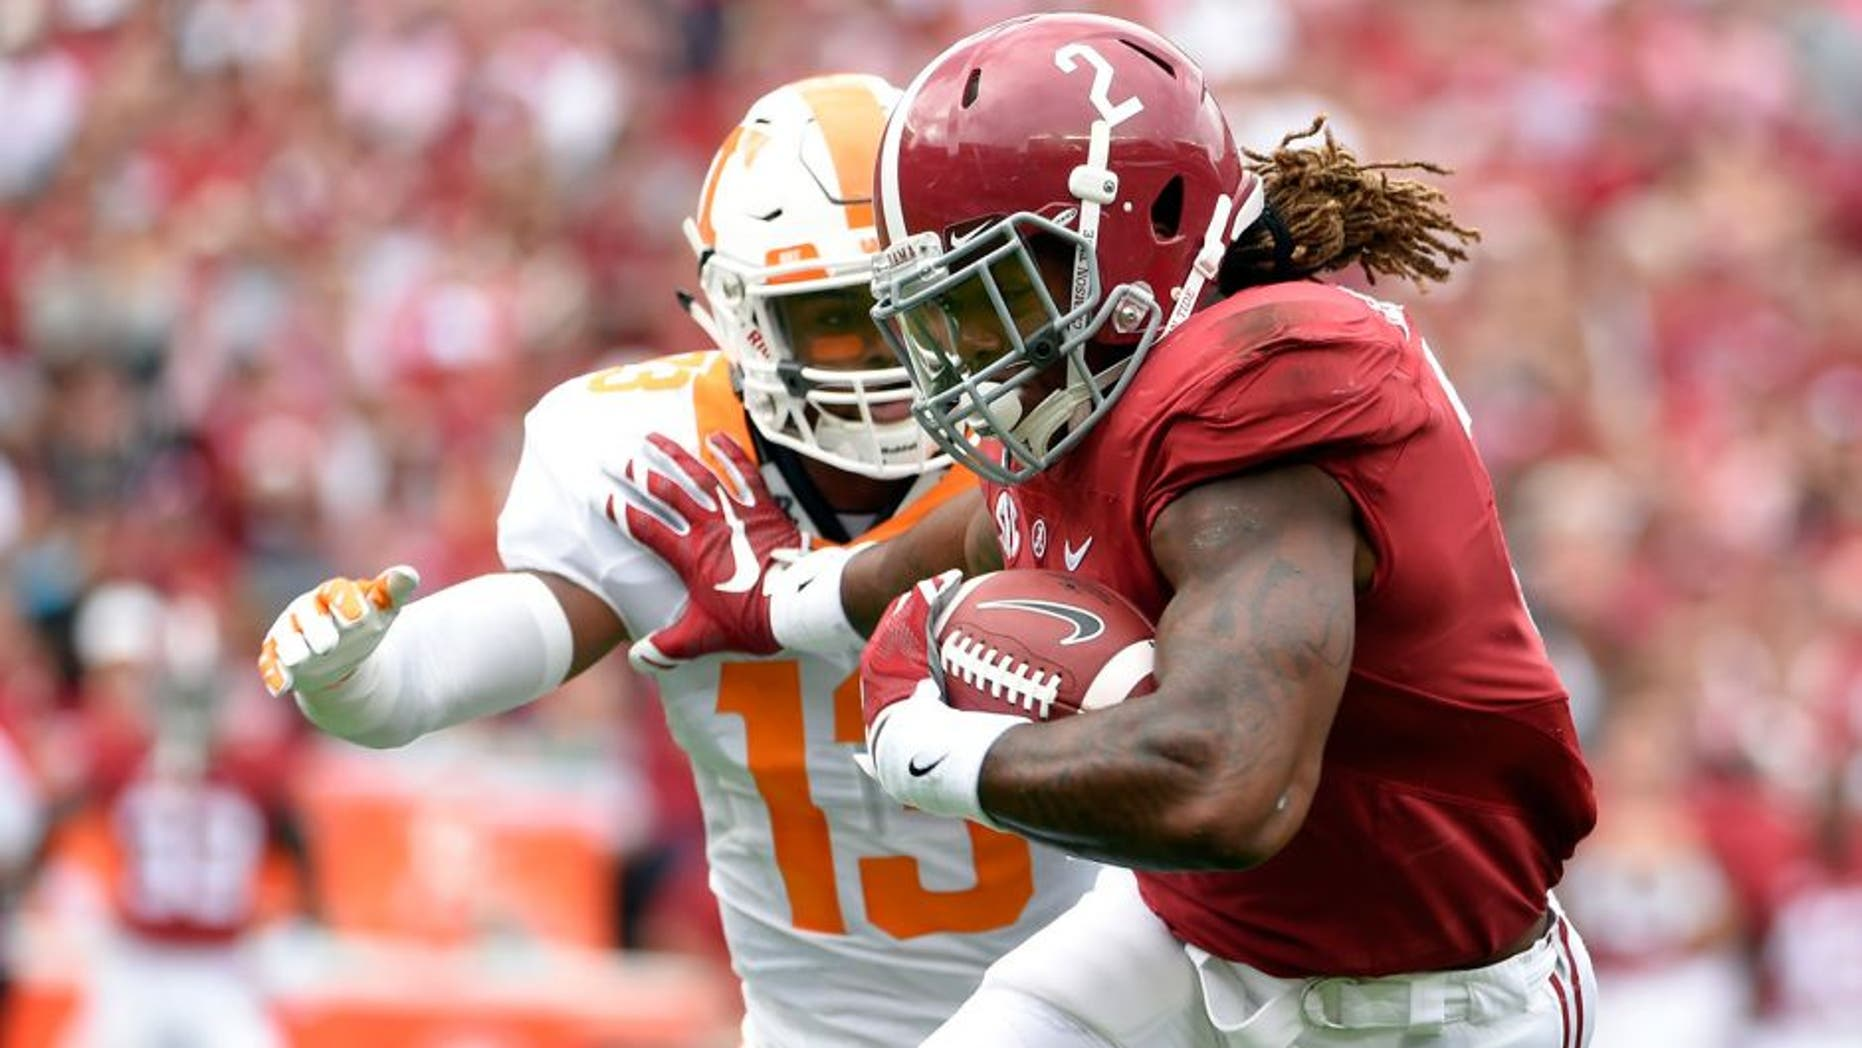 Oct 24, 2015; Tuscaloosa, AL, USA; Alabama Crimson Tide running back Derrick Henry (2) carries for a touchdown against Tennessee Volunteers defensive back Malik Foreman (13) during the first quarter at Bryant-Denny Stadium. Mandatory Credit: John David Mercer-USA TODAY Sports